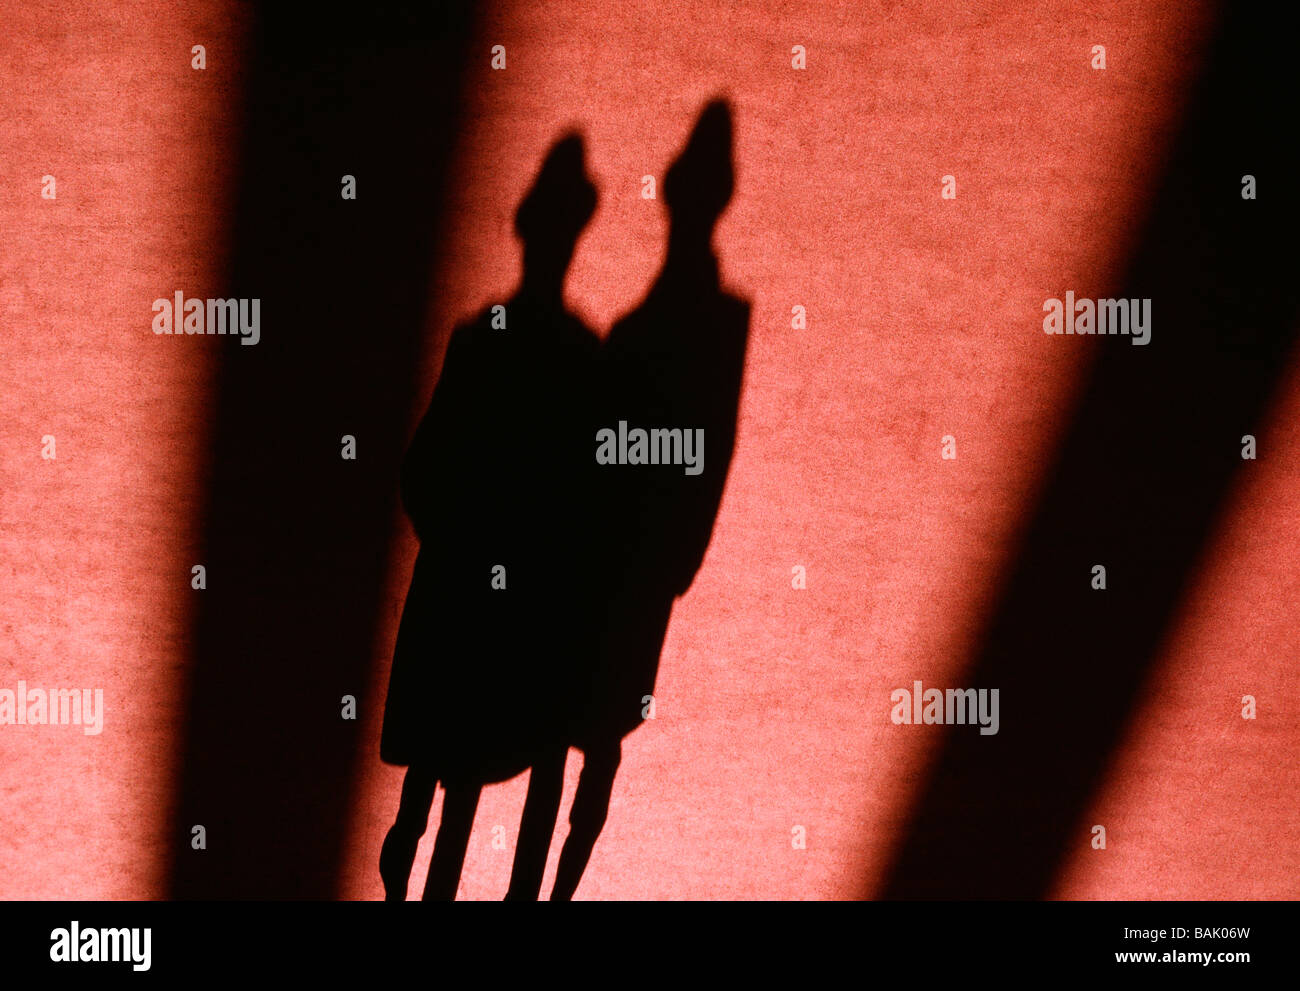 Abstract view of a couple s shadow cast on a red rug - Stock Image